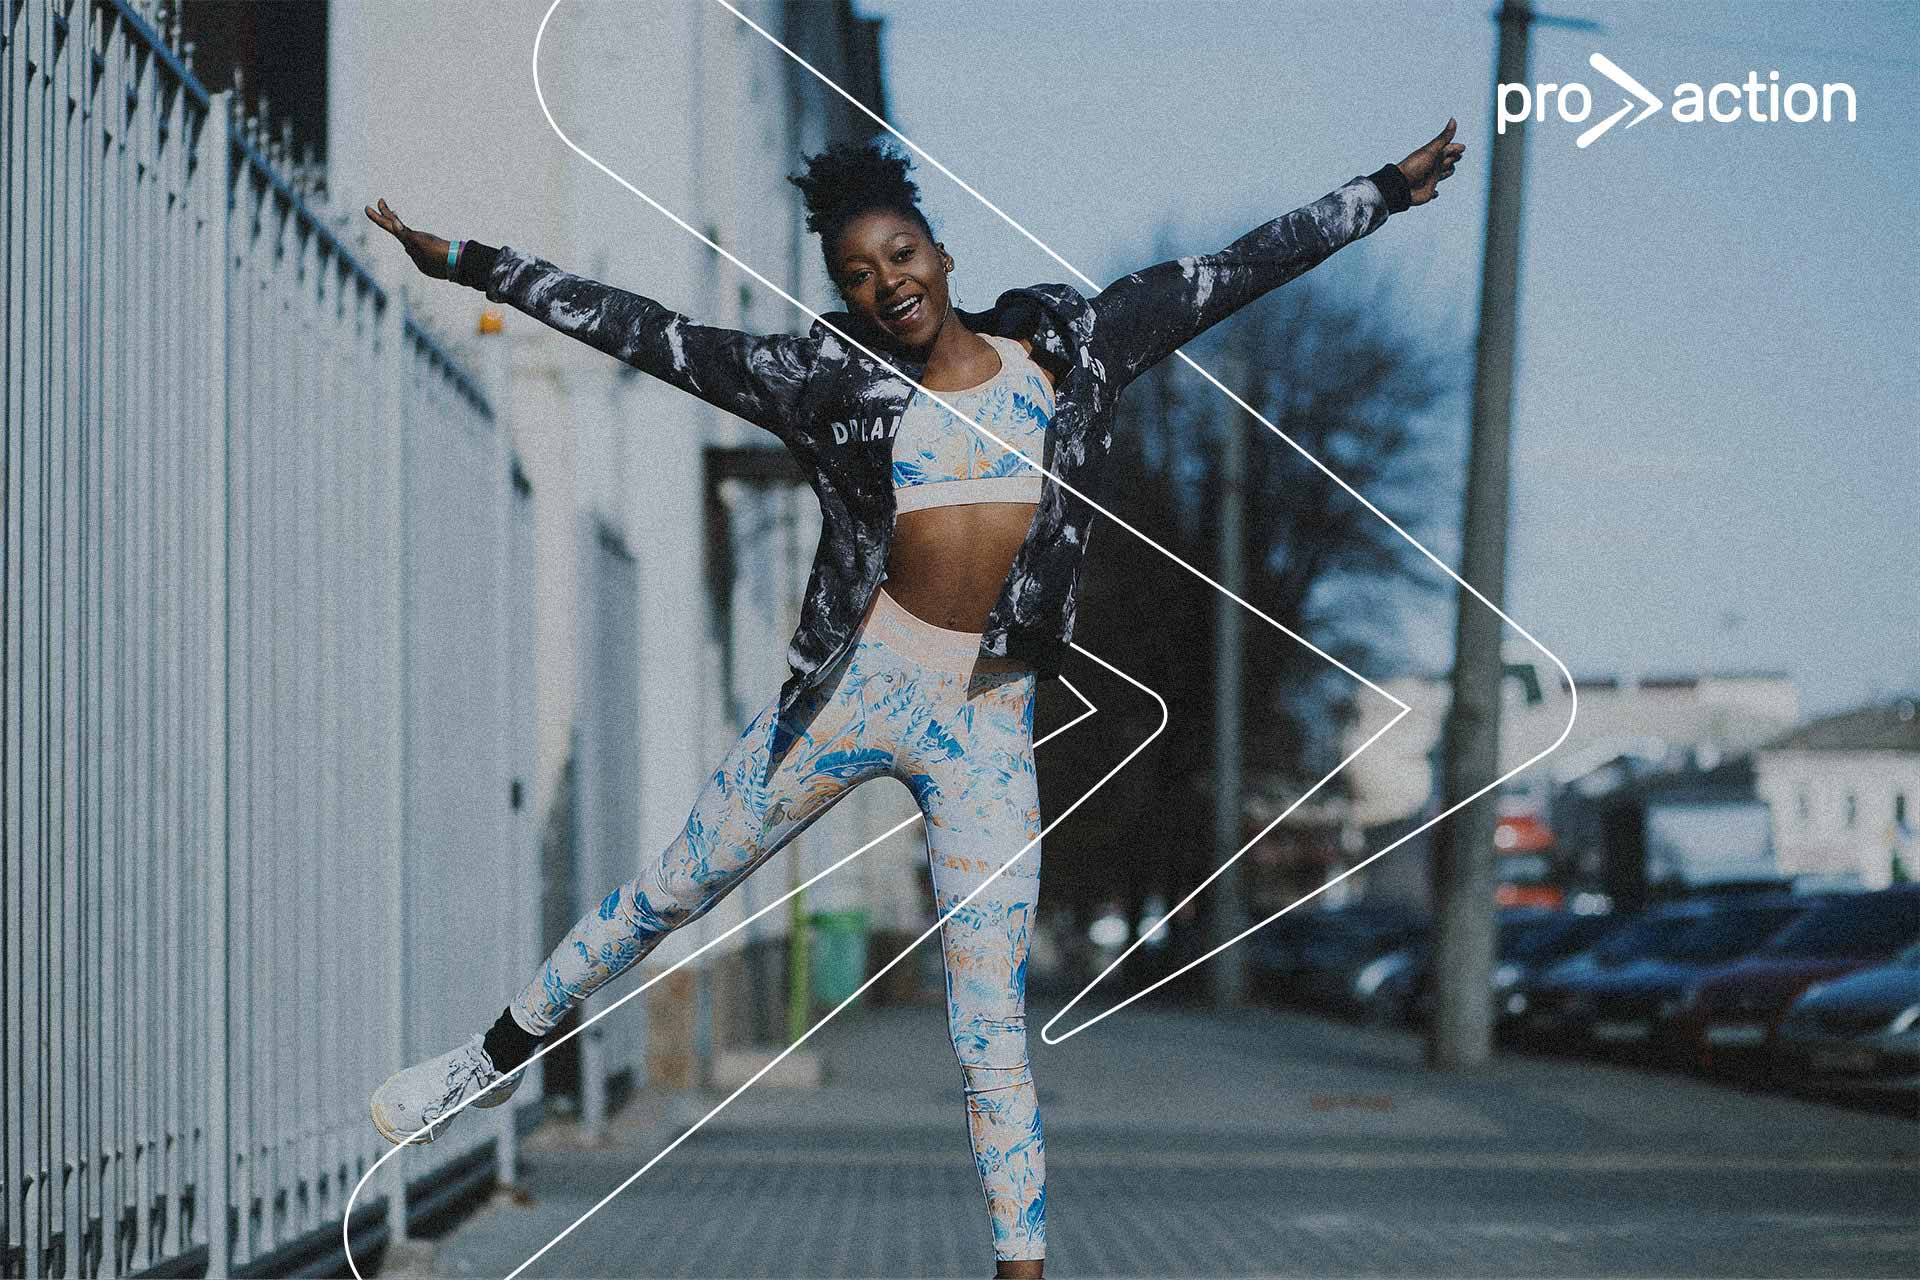 Carefree black woman wearing Pro Action yoga pants and gym clothes dancing in street